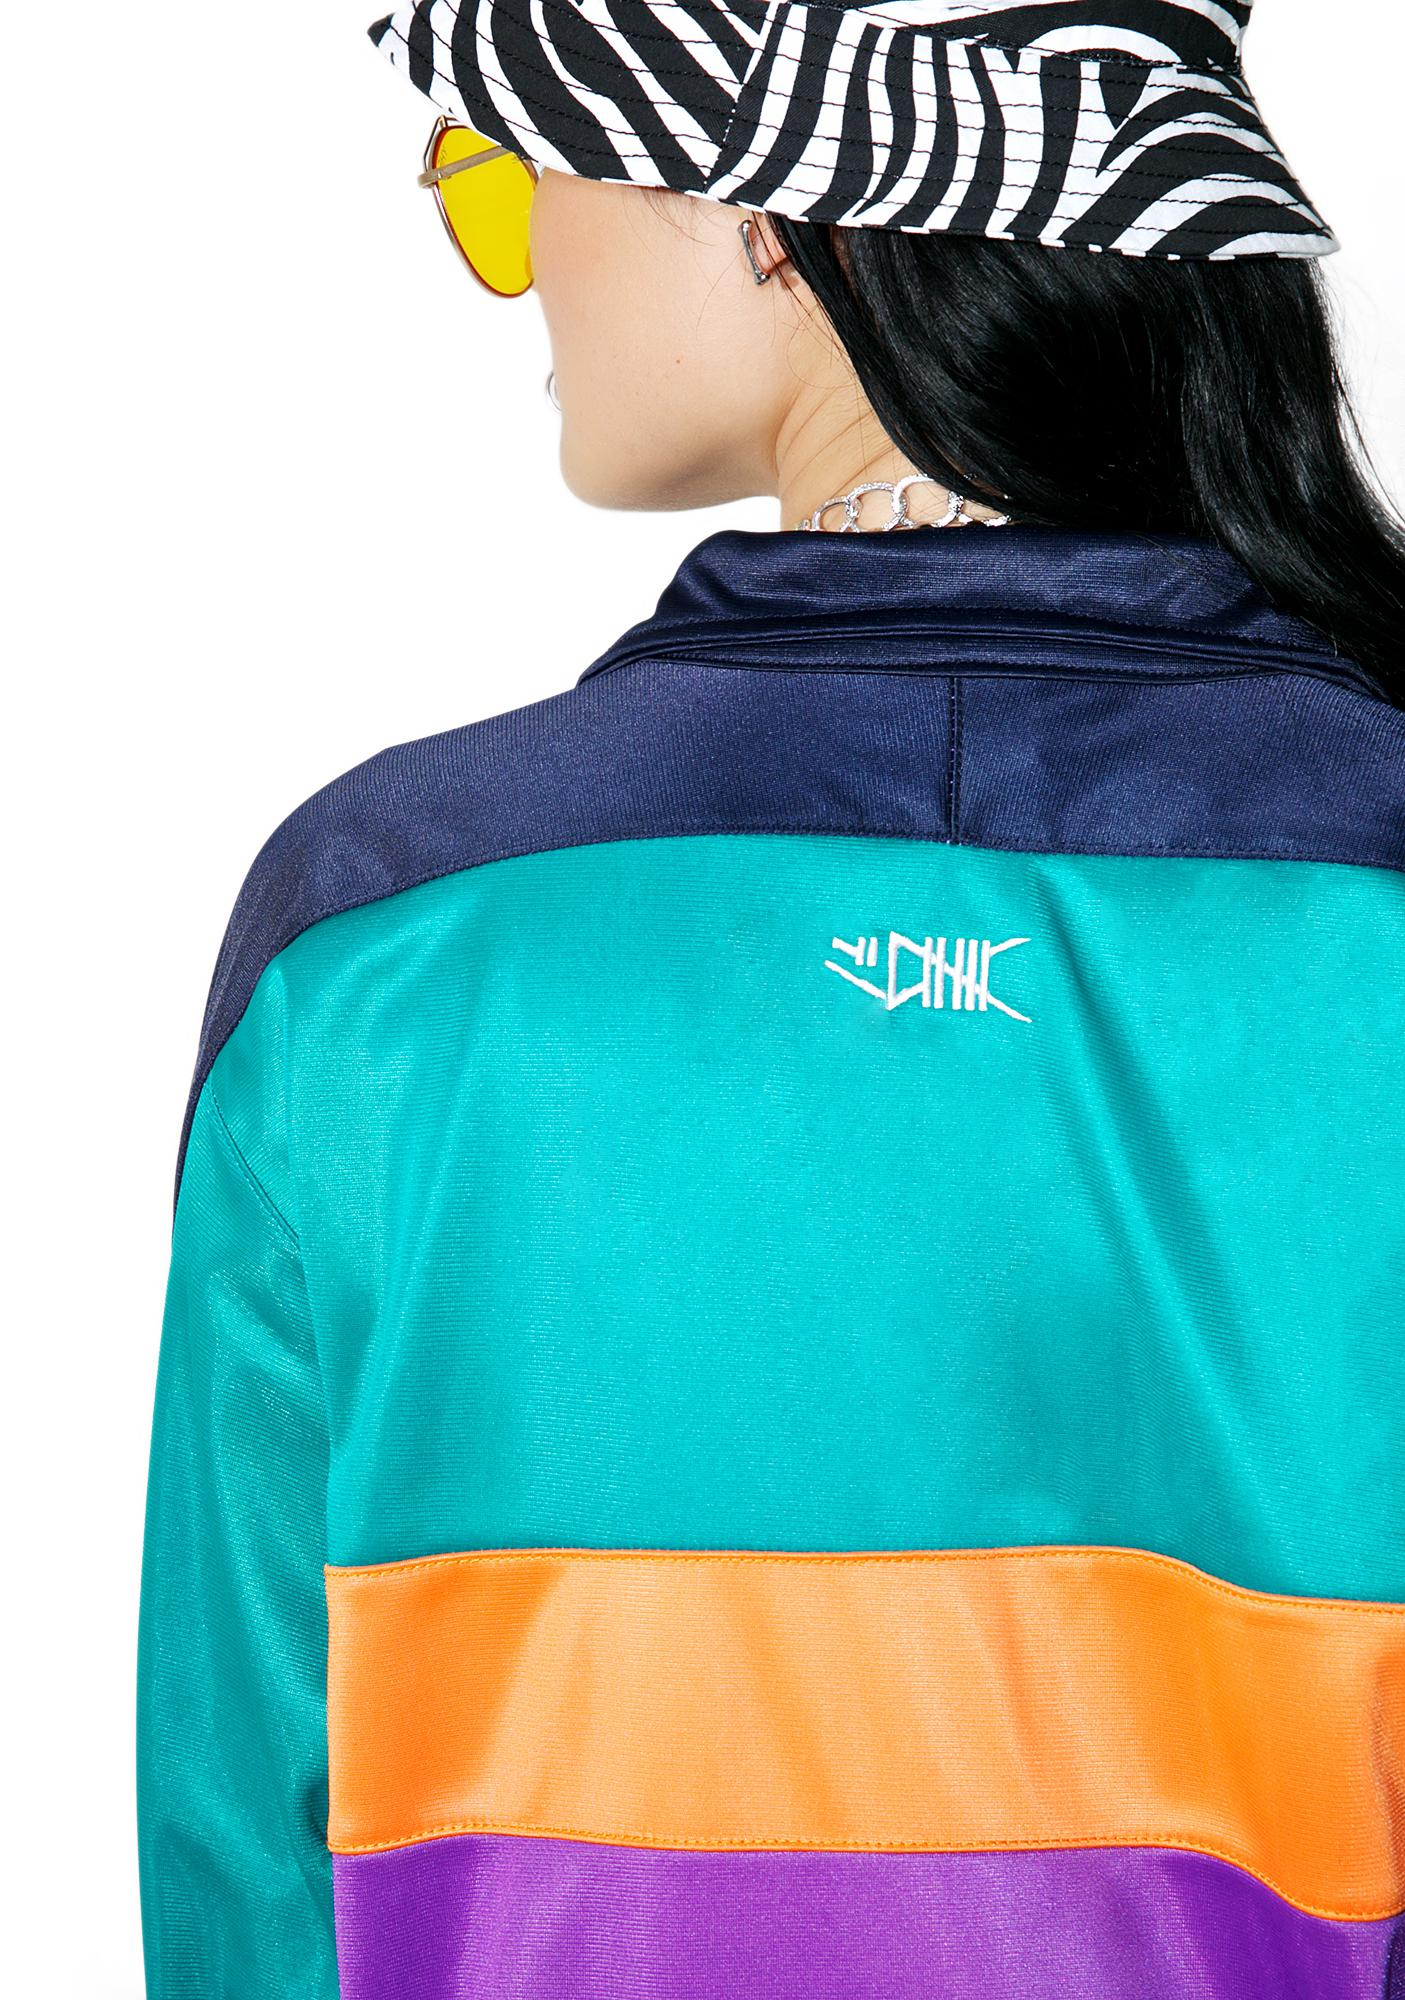 ETHIK Conference Champs Pullover Track Jacket